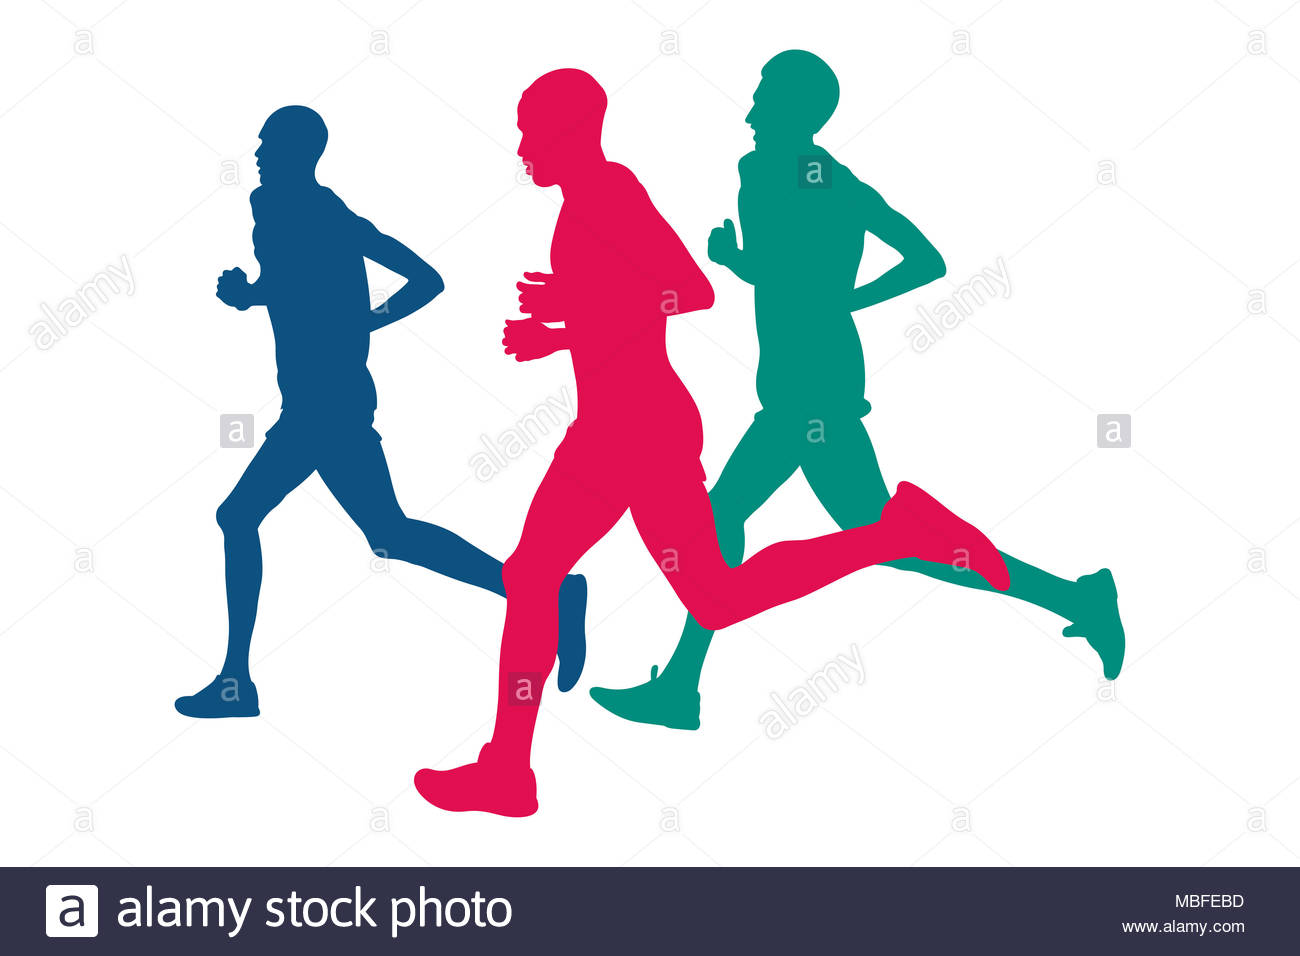 1300x956 Silhouette Man Running Three Stock Photos Amp Silhouette Man Running